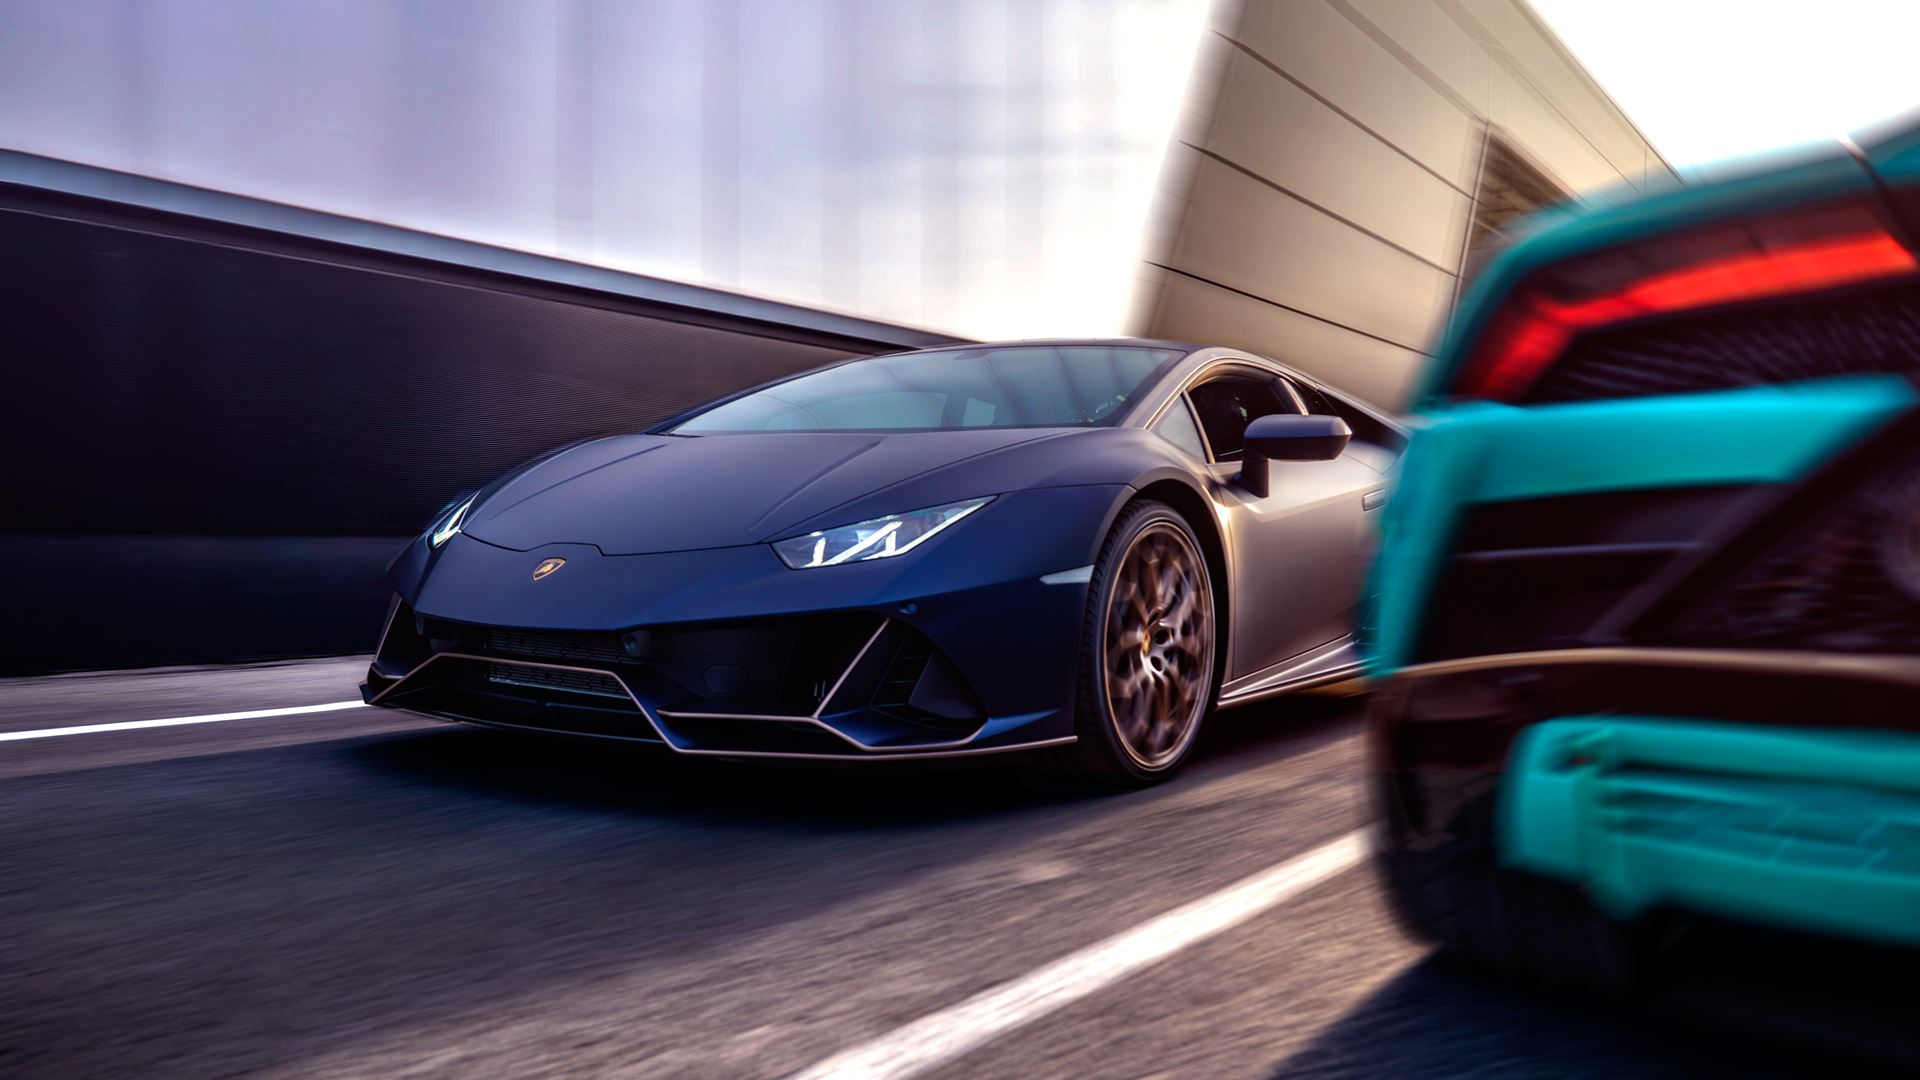 Lamborghini Mexico Commissions Special Edition Models To Commemorate 10 Years in the Region - Image 6